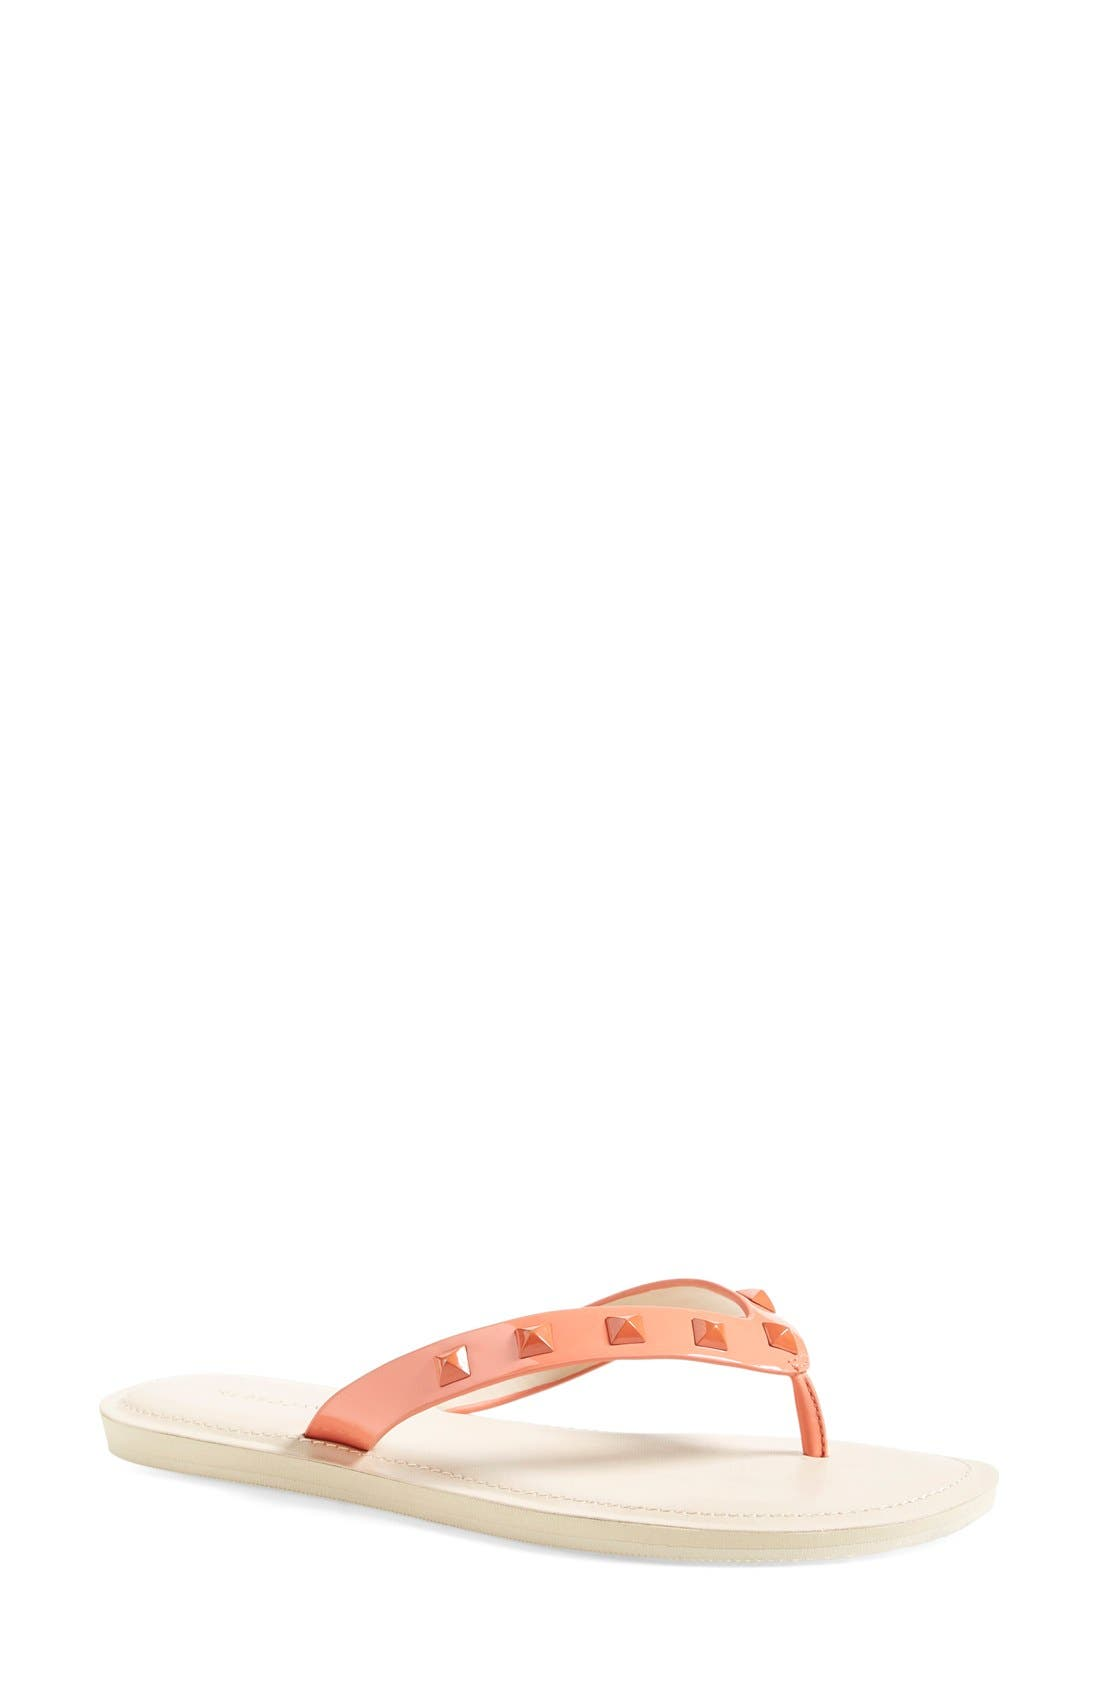 Alternate Image 1 Selected - Rebecca Minkoff 'Fiona' Thong Sandal (Women)